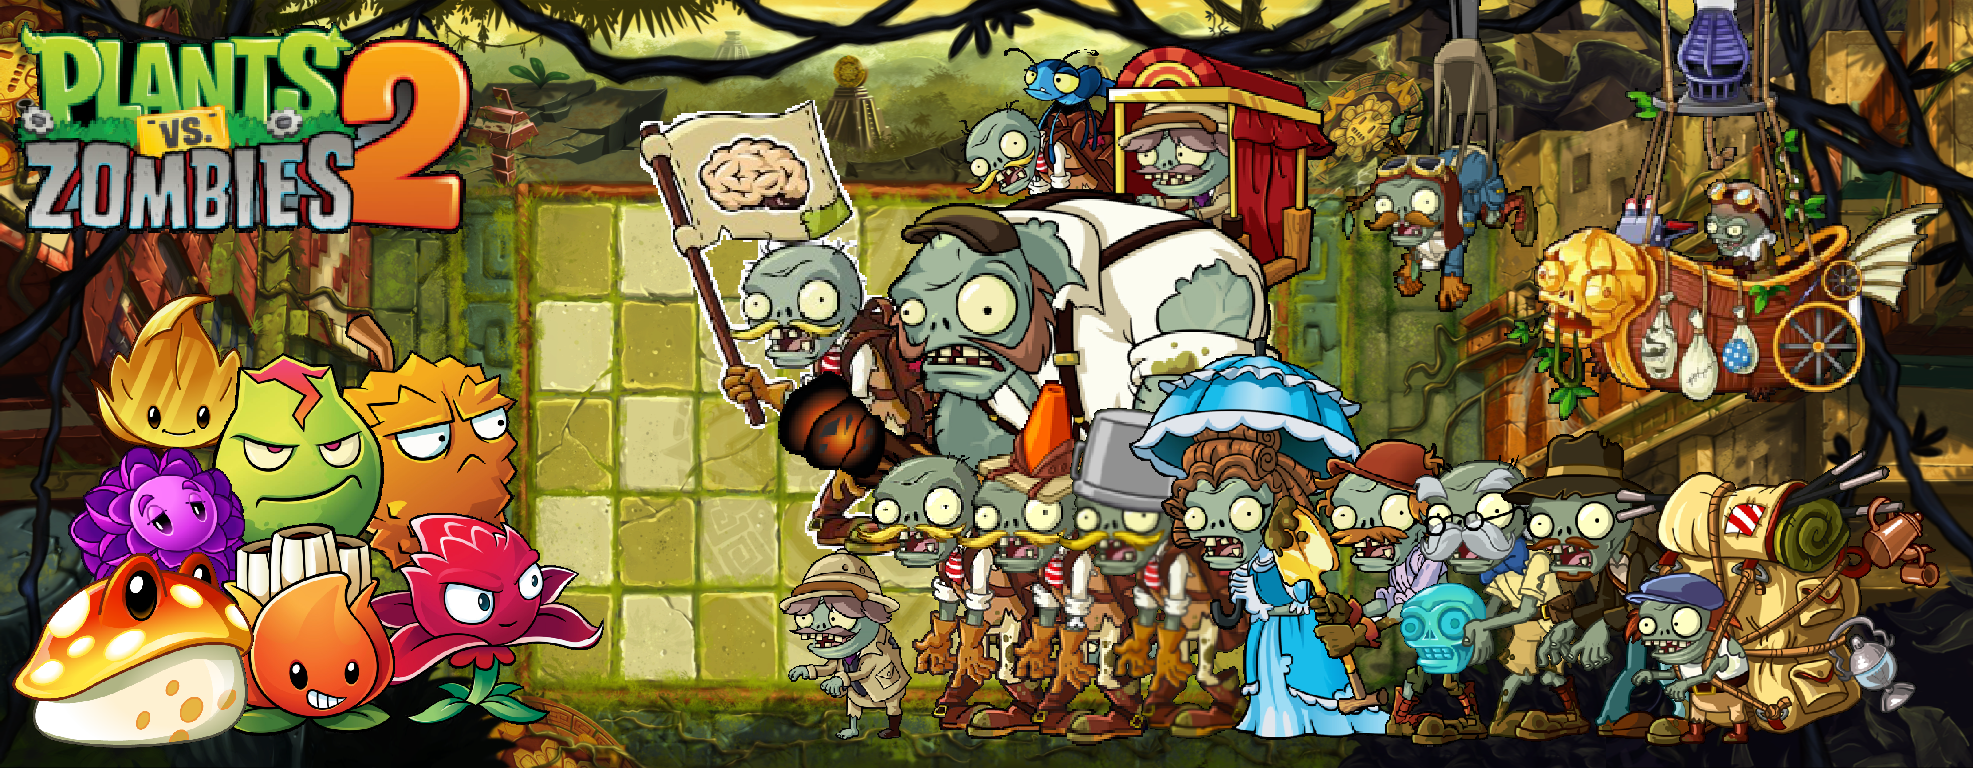 Plant Vs Zombies 2 Wallpaper: Plants Vs Zombies 2 Lost City Wallpaper By